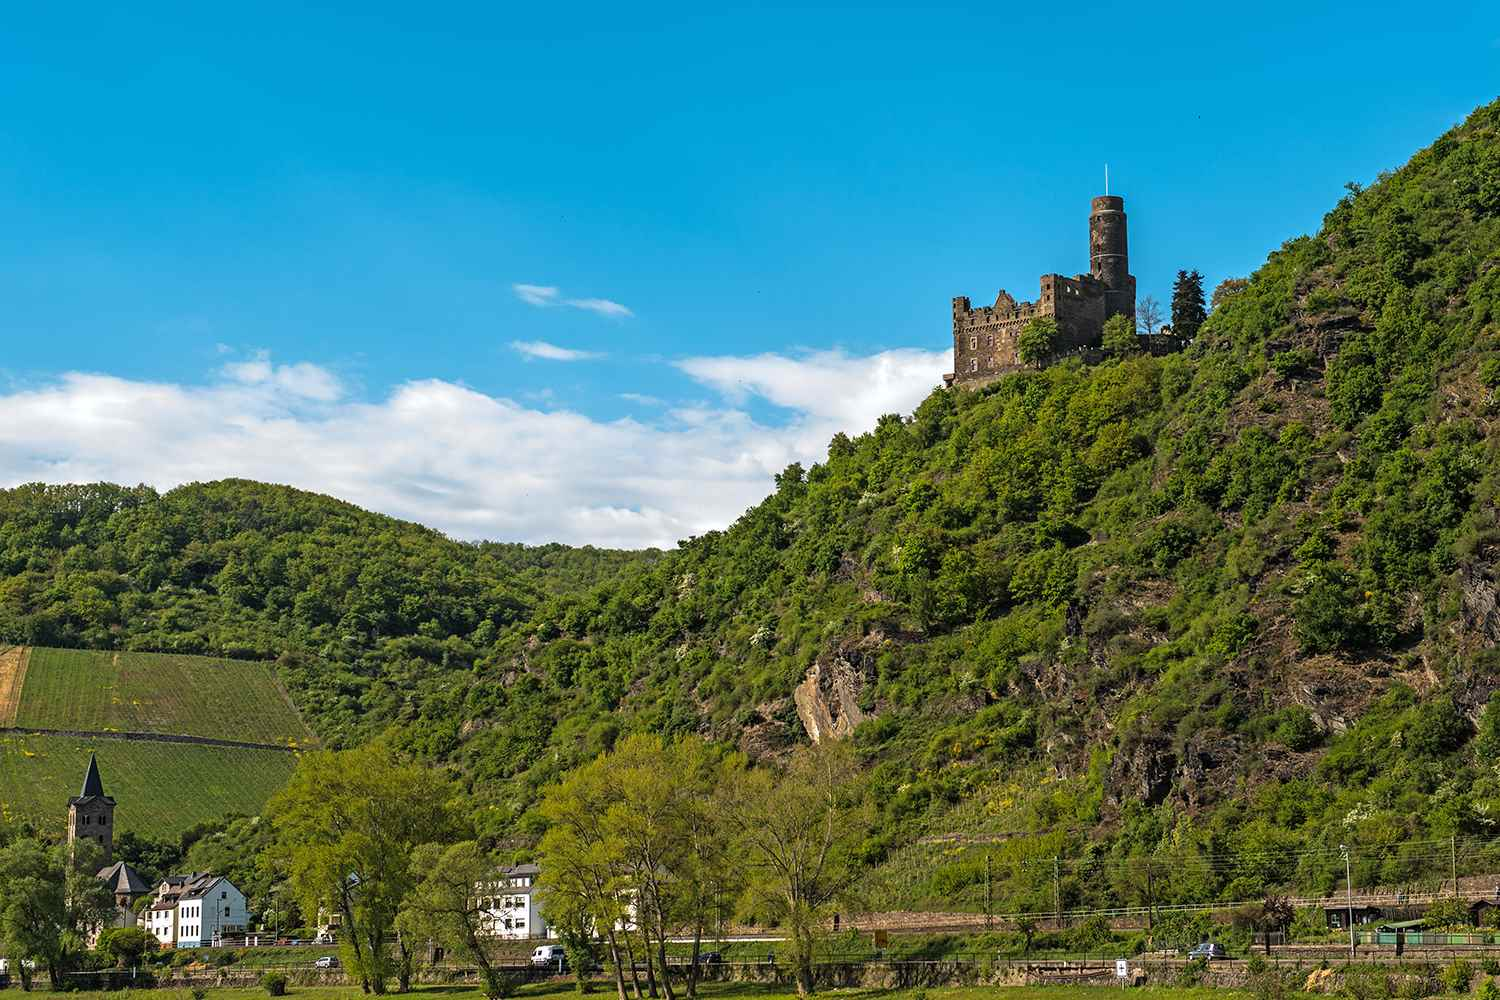 /Assets/CruiseGallery/Thumb/enchantingrhine_germany_rhinegorge_ss_216515635_gallery.jpg